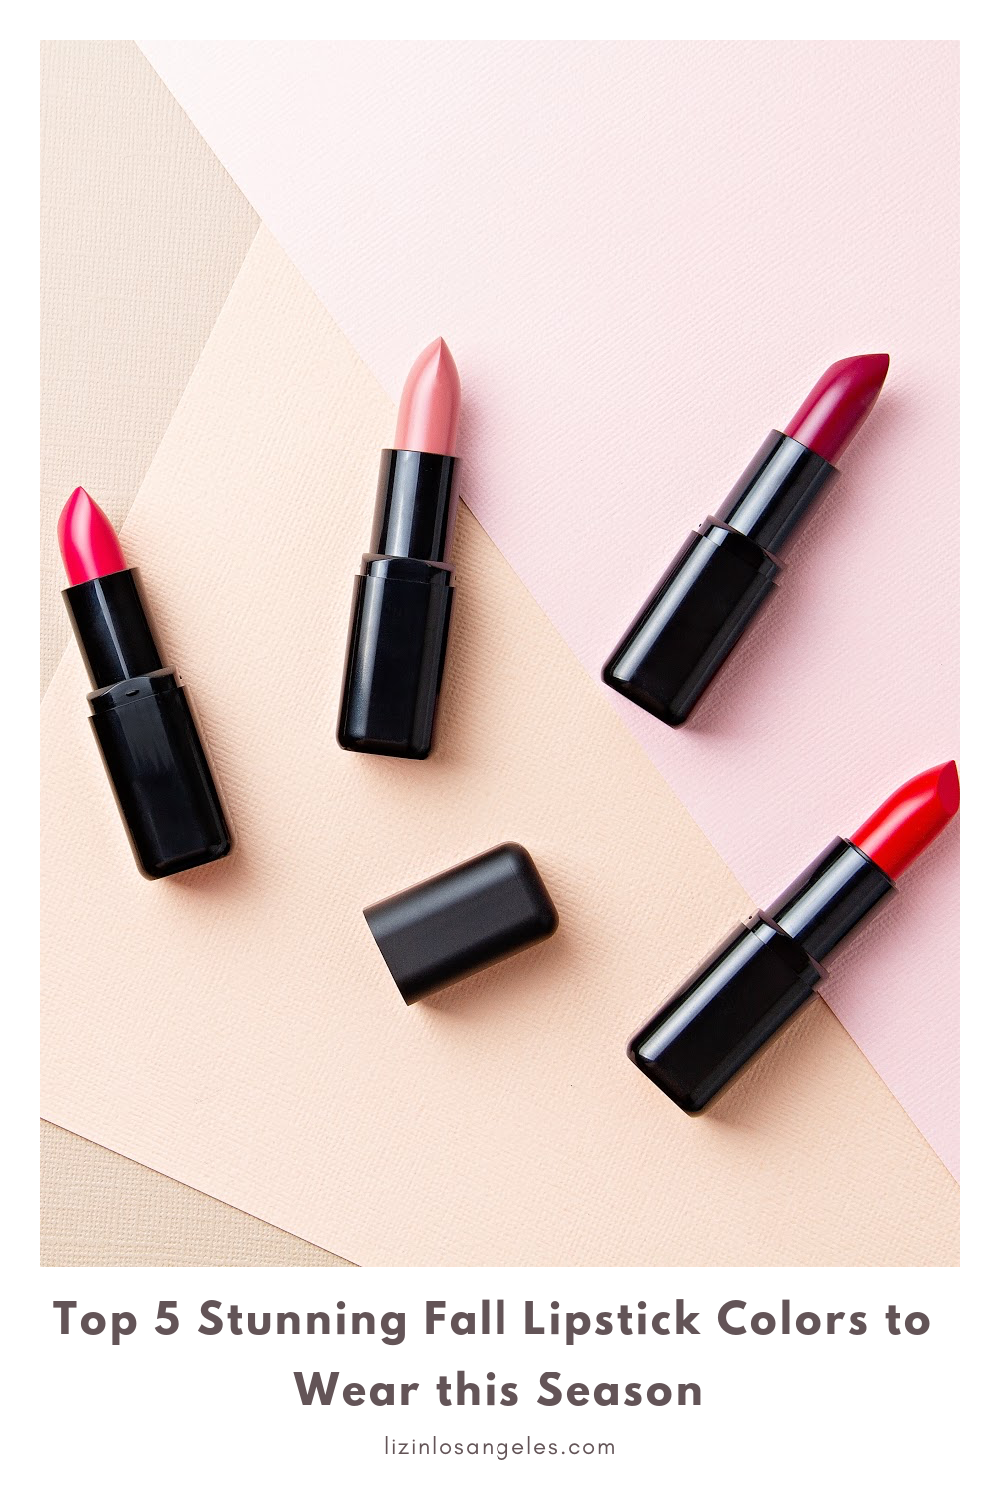 Top 5 Stunning Fall Lipstick Colors to Wear this Season, a blog post by Liz in Los Angeles, Los Angeles lifestyle blogger, an image of lipsticks